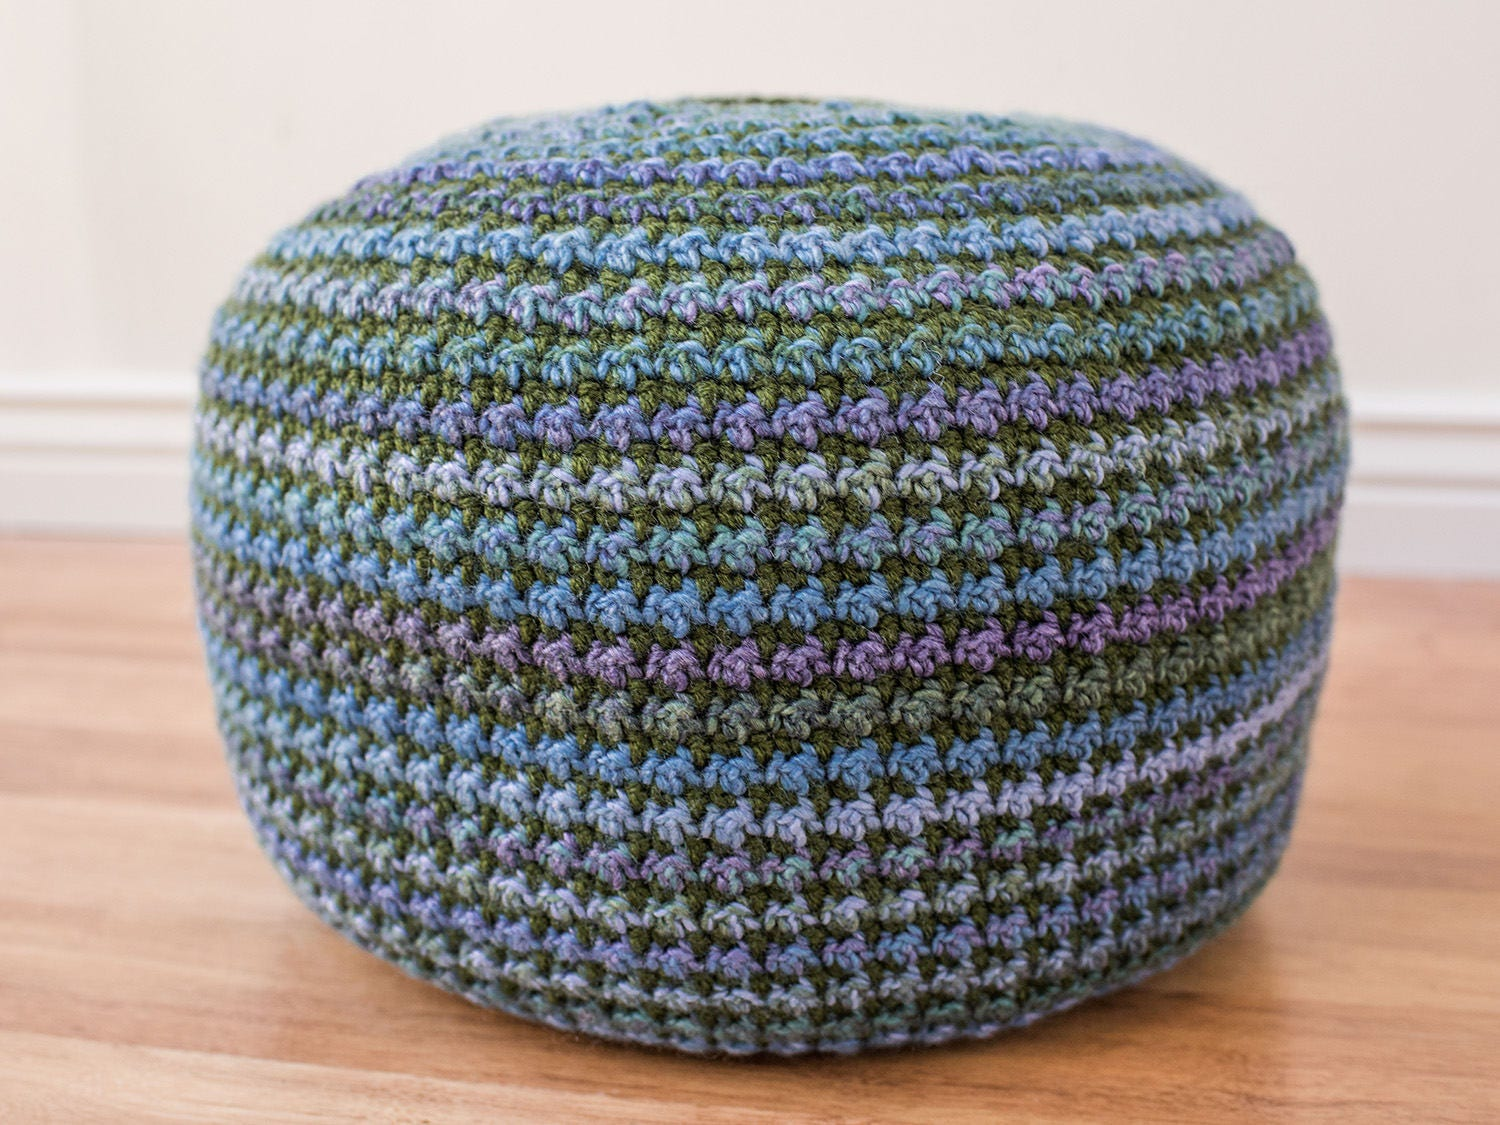 Crochet Pouf Pattern, crochet pillow pattern, crochet pattern, floor ...